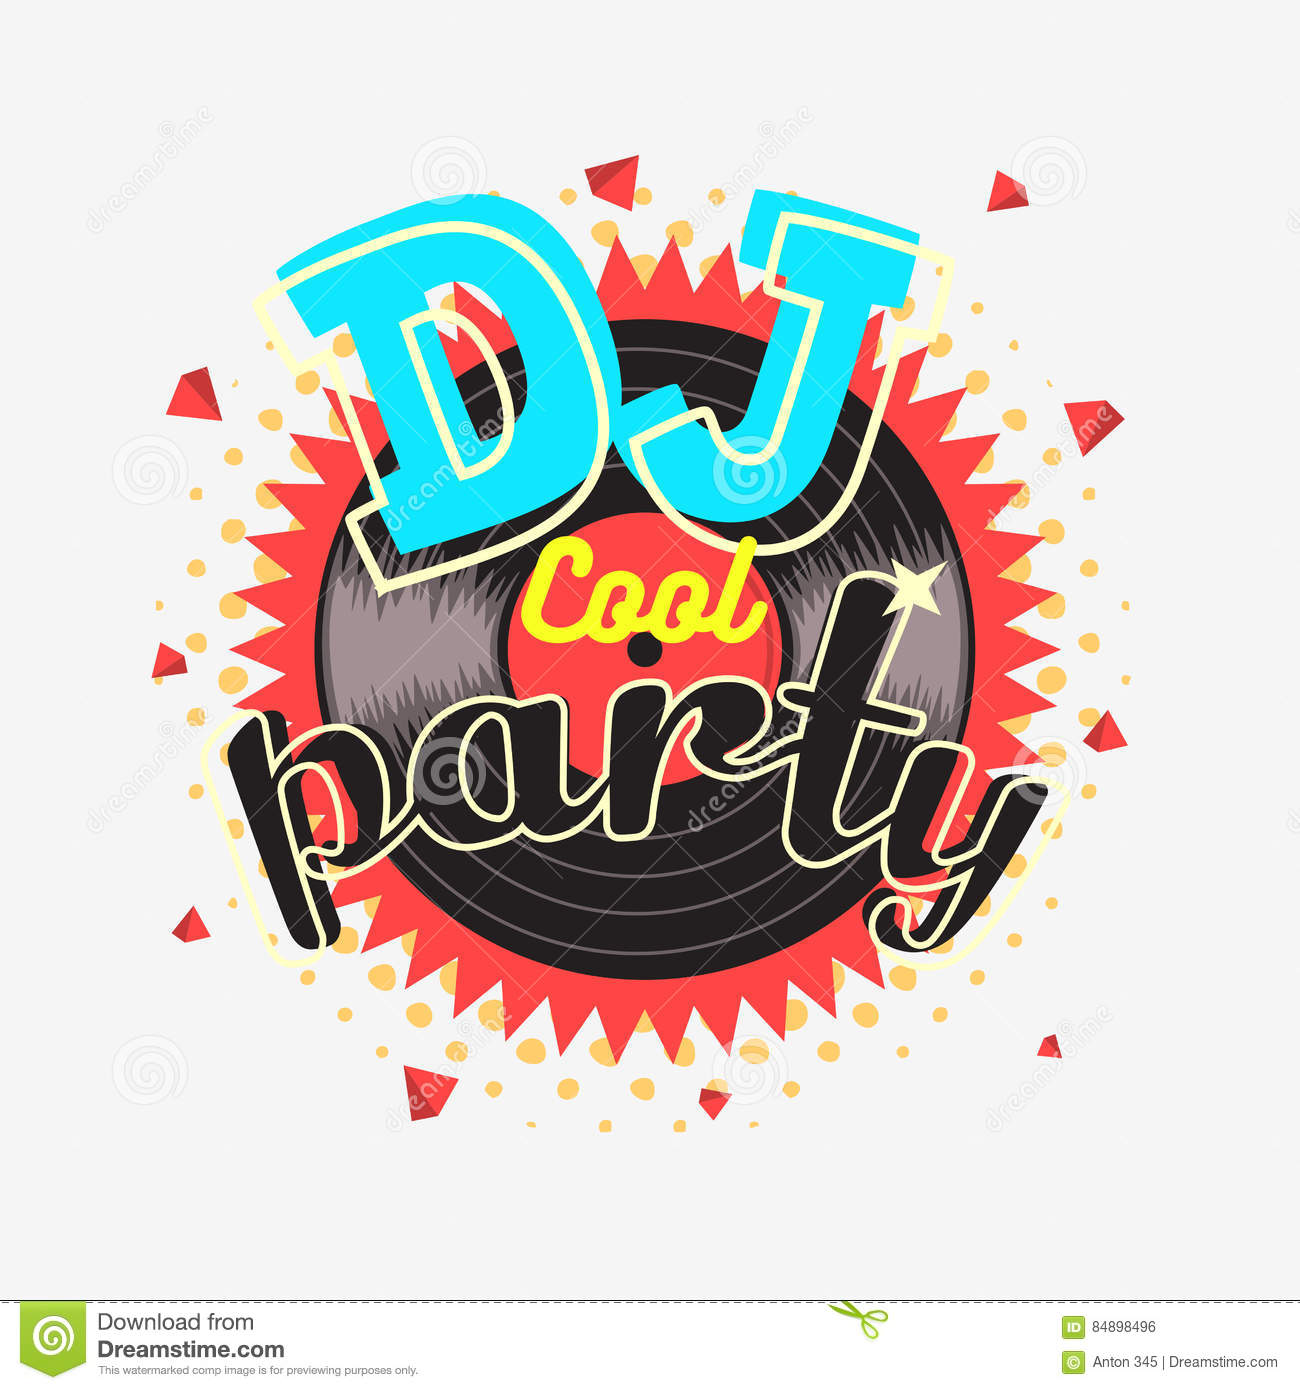 90s poster design - Dj Cool Party 90s Aesthetic Vibrant Colors Poster Design Stock Vector